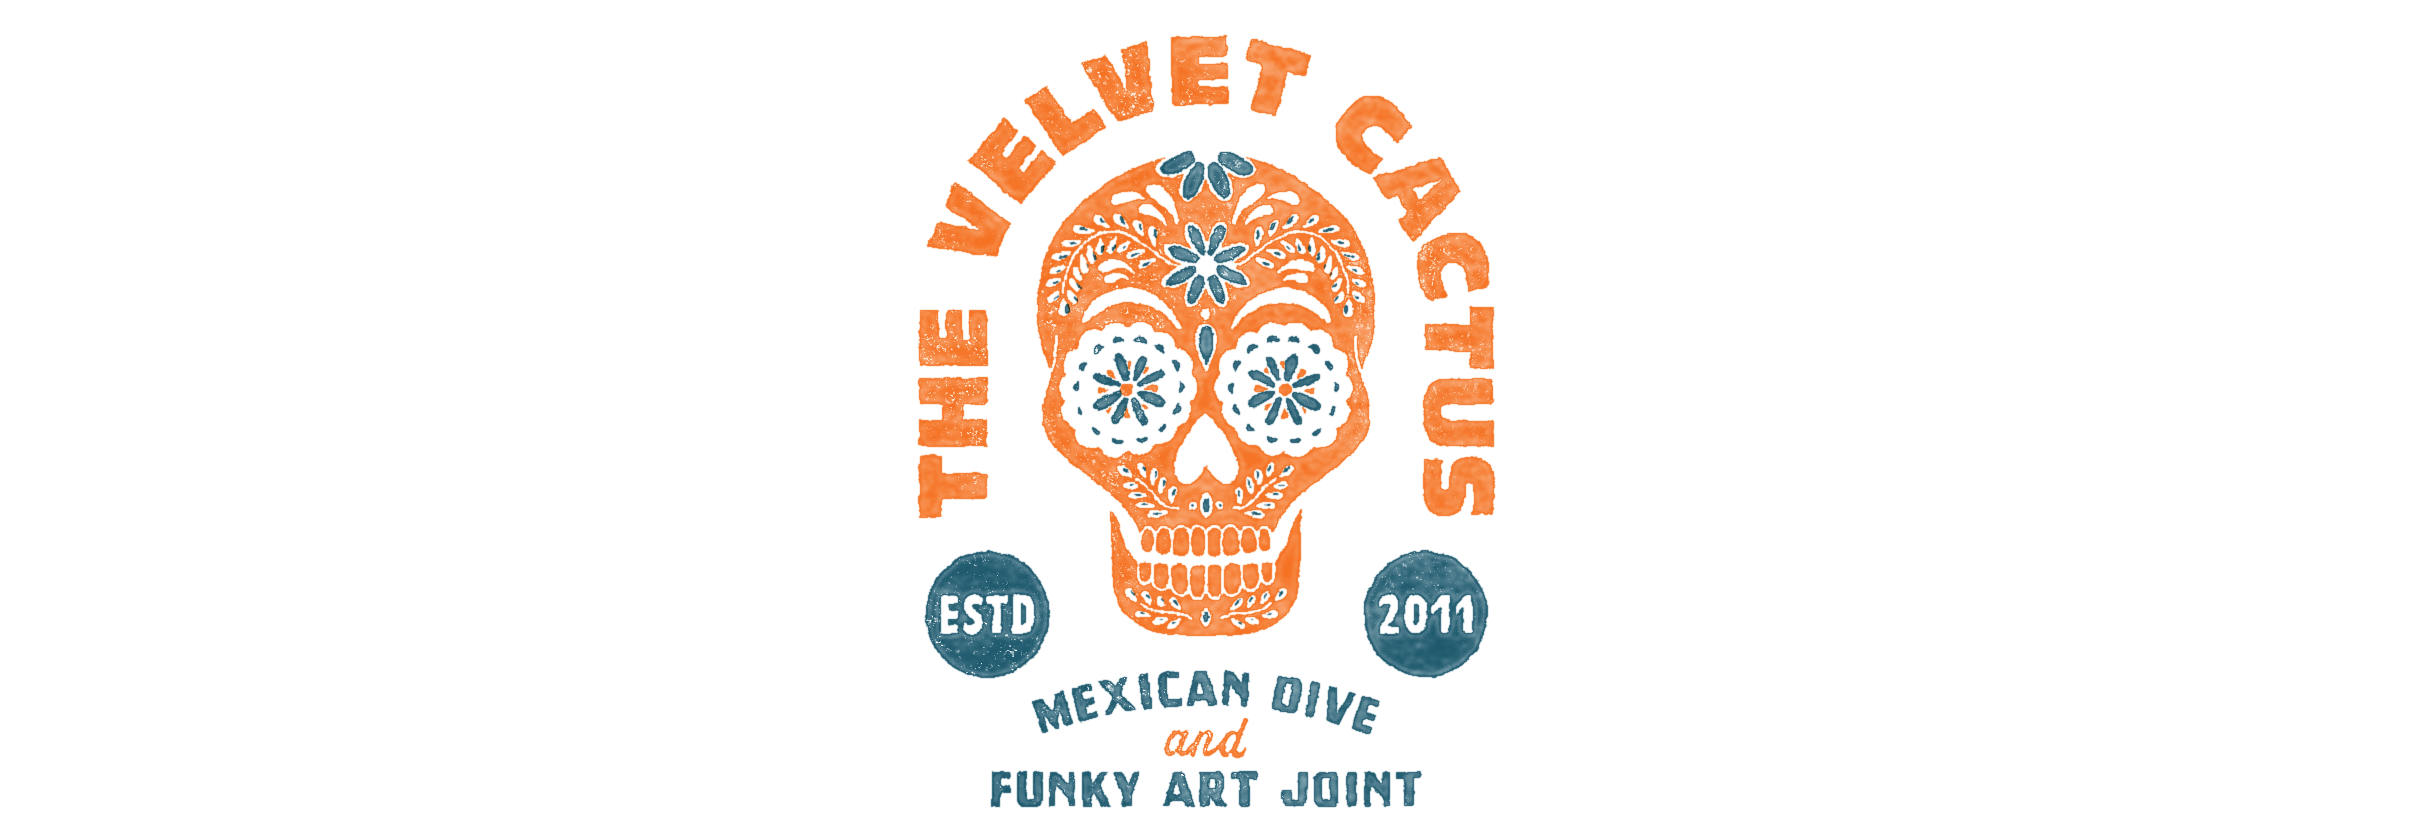 THE VELVET CACTUS badge 2.png